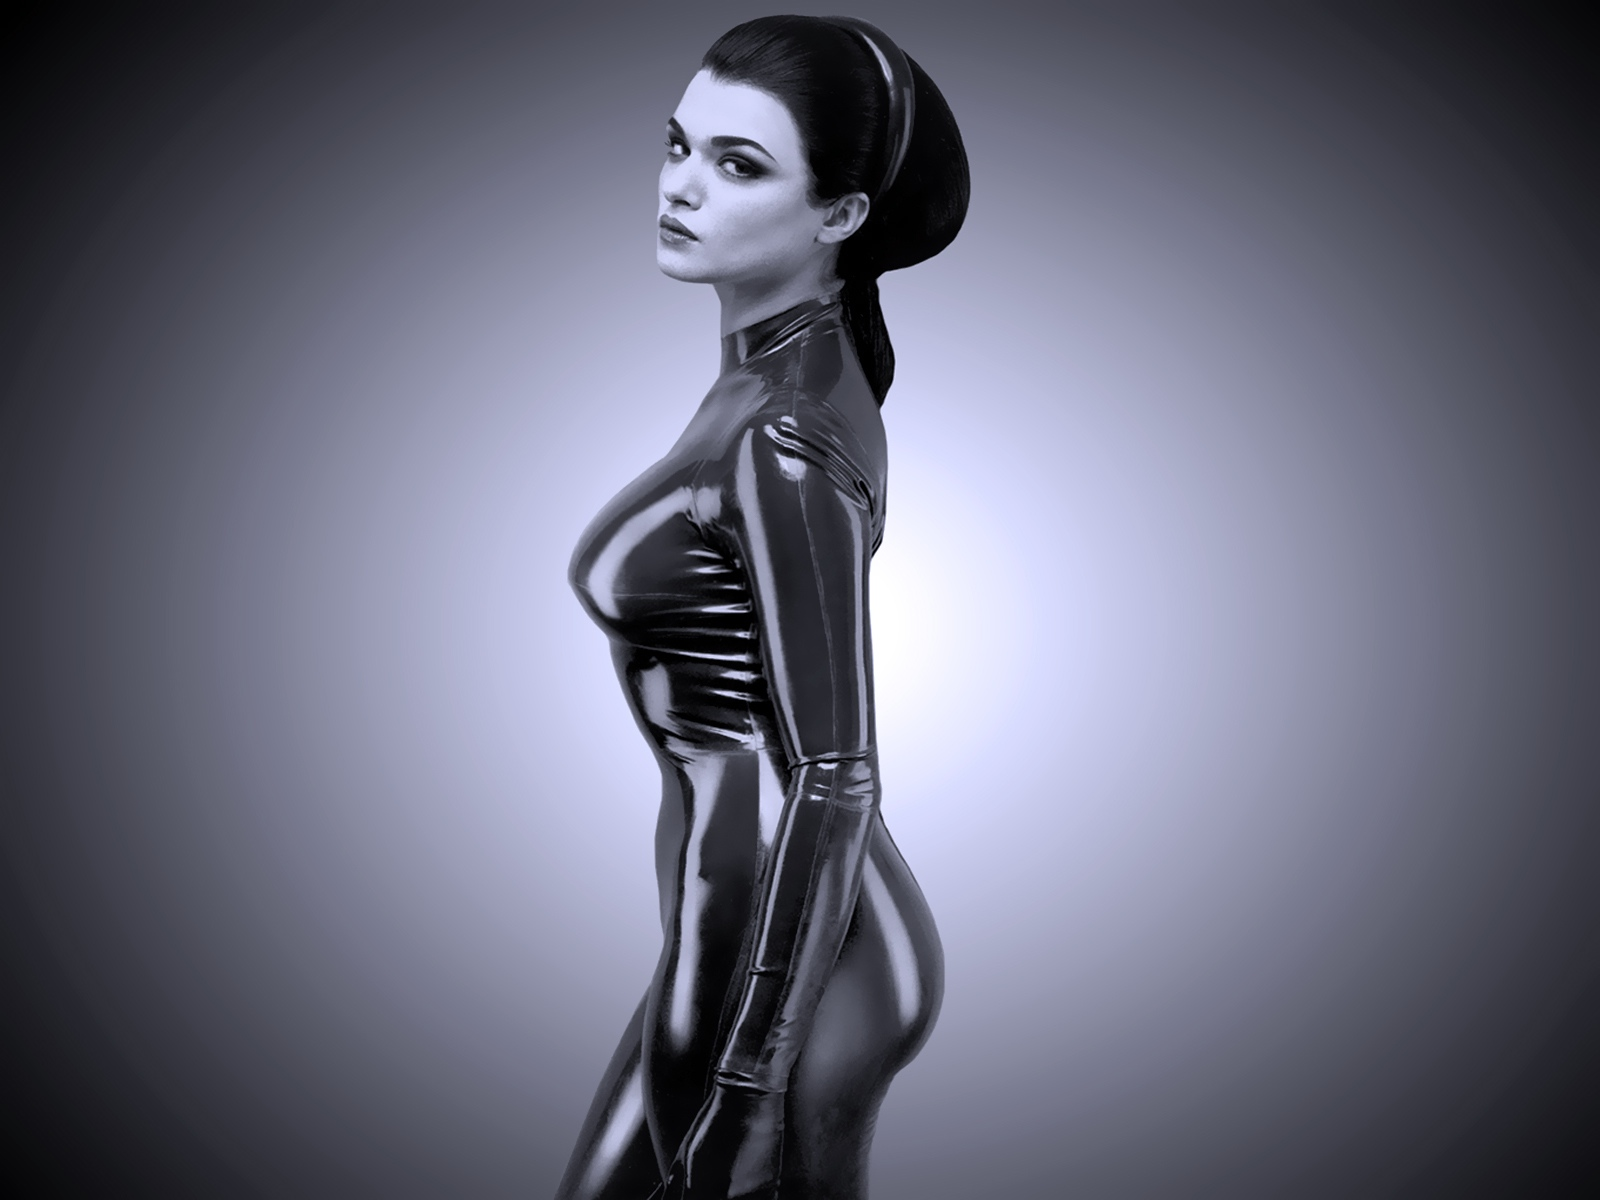 rachel latex dolls